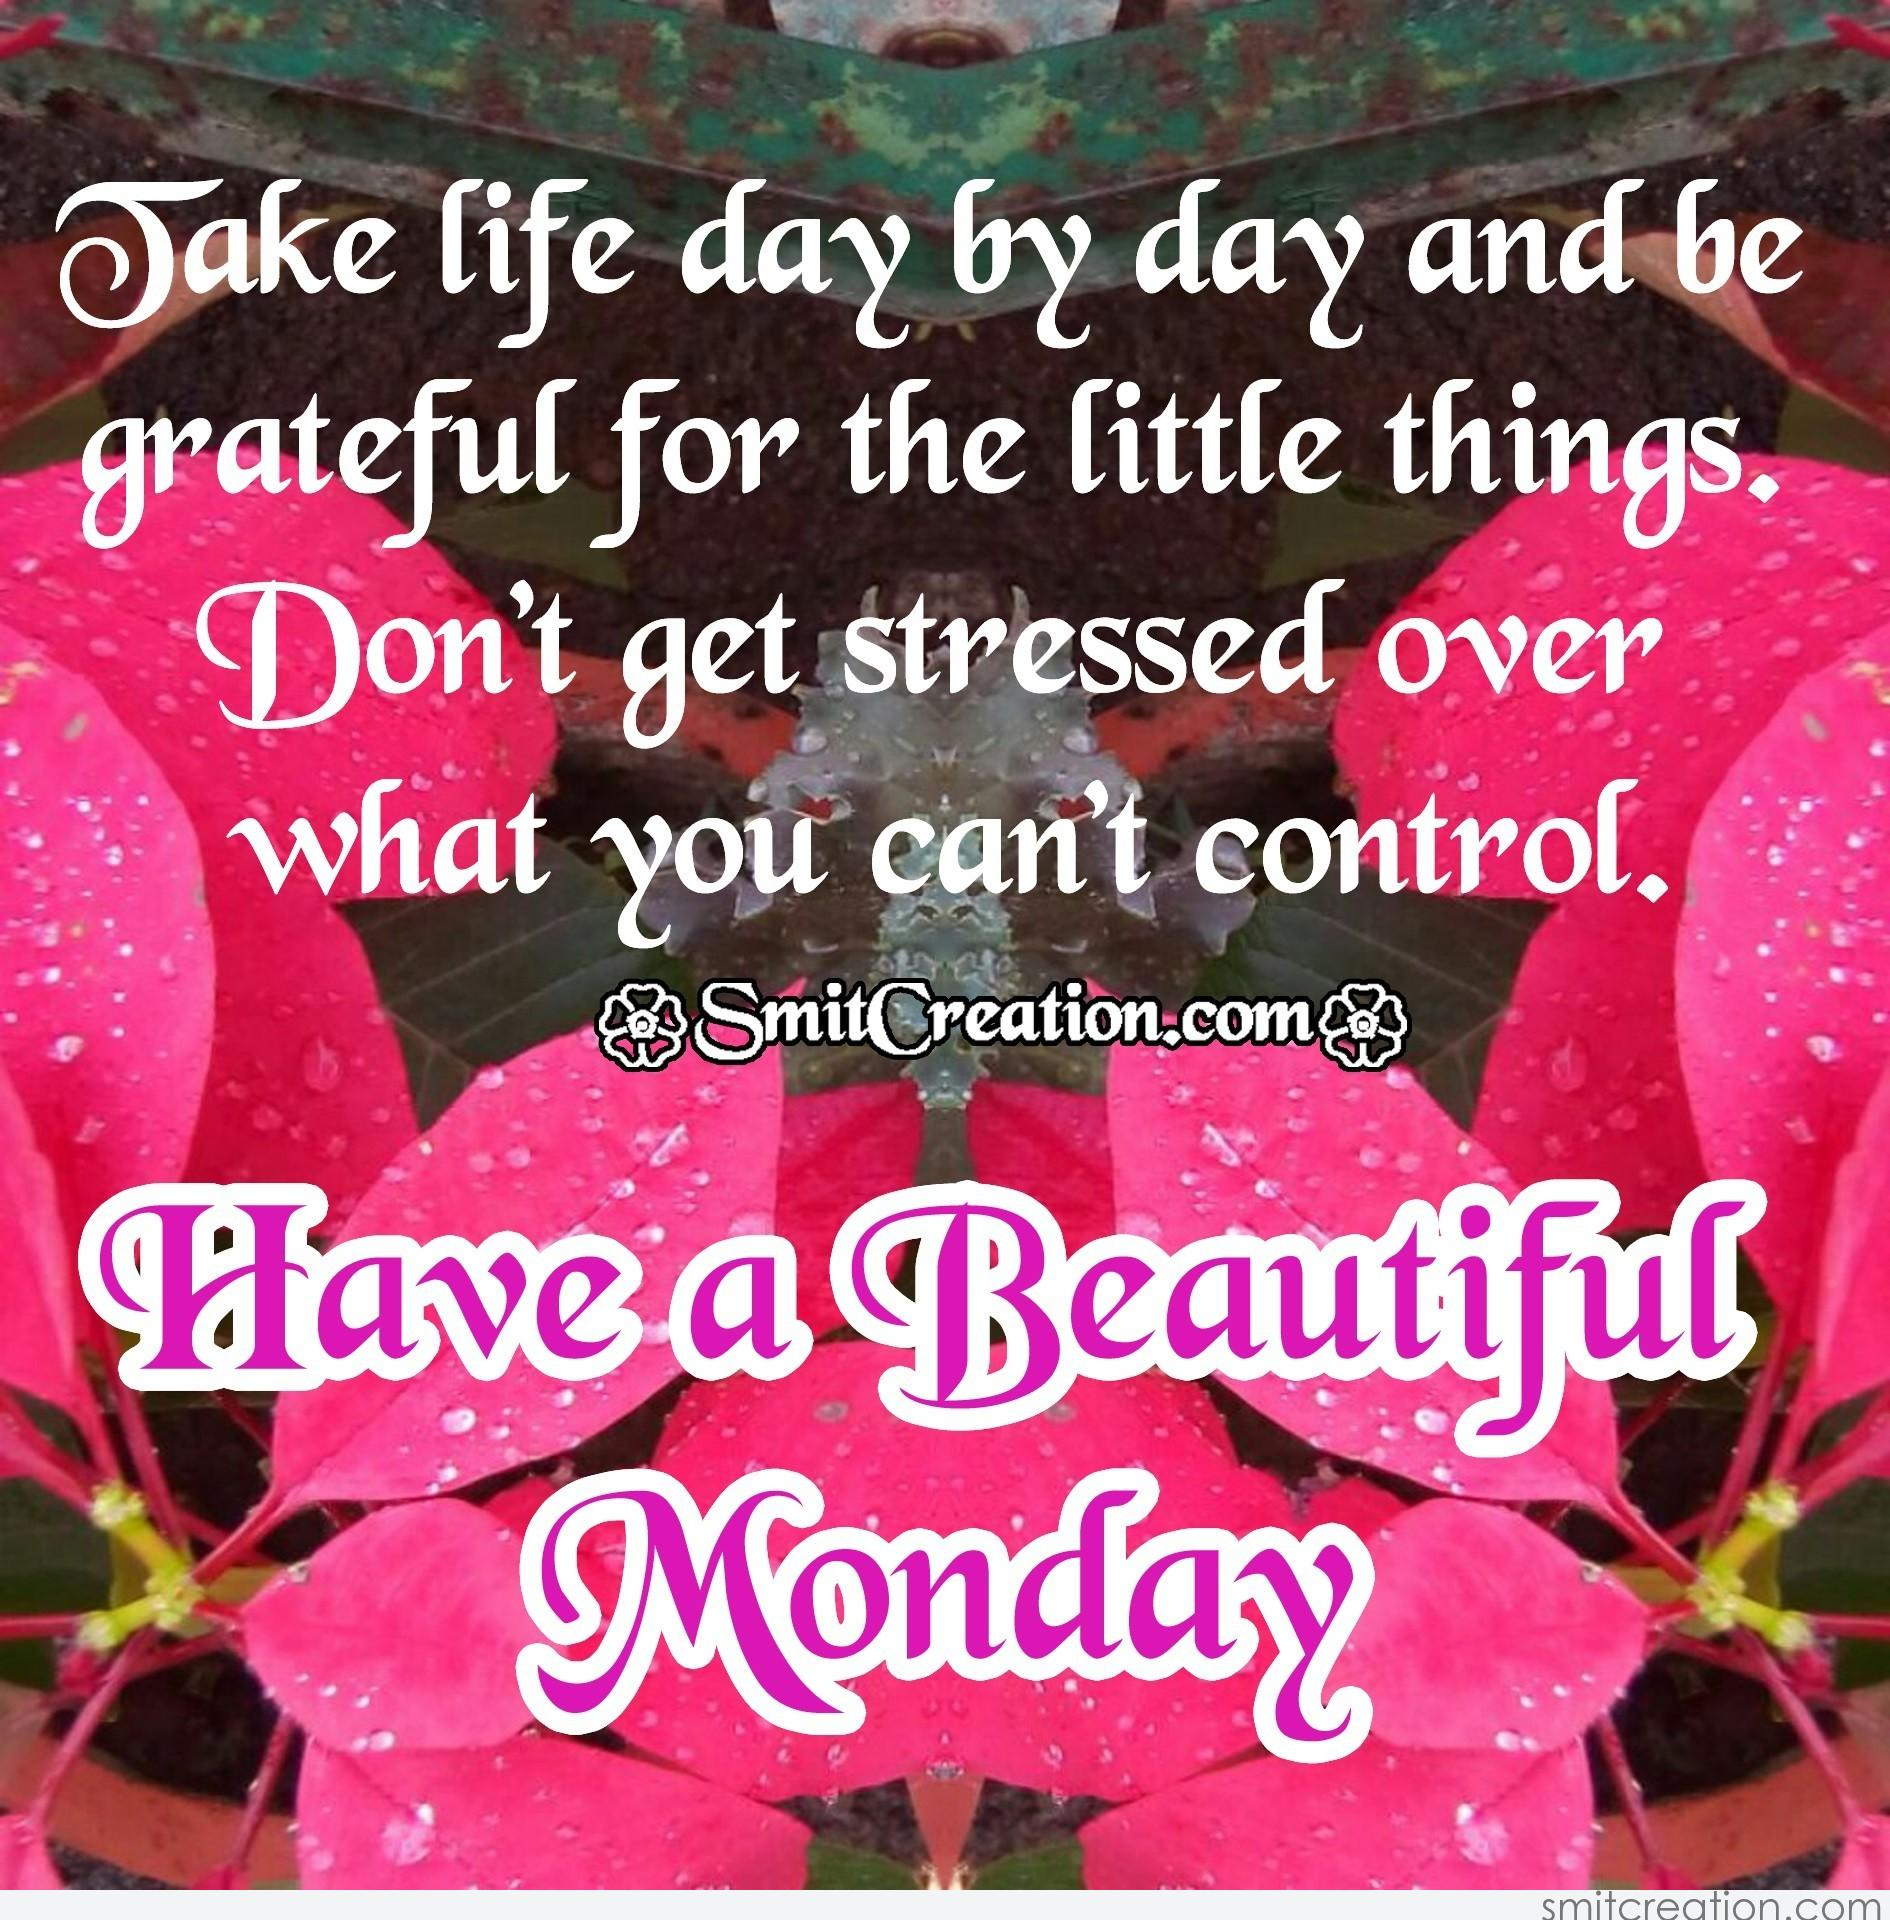 Have a beautiful monday smitcreation download image m4hsunfo